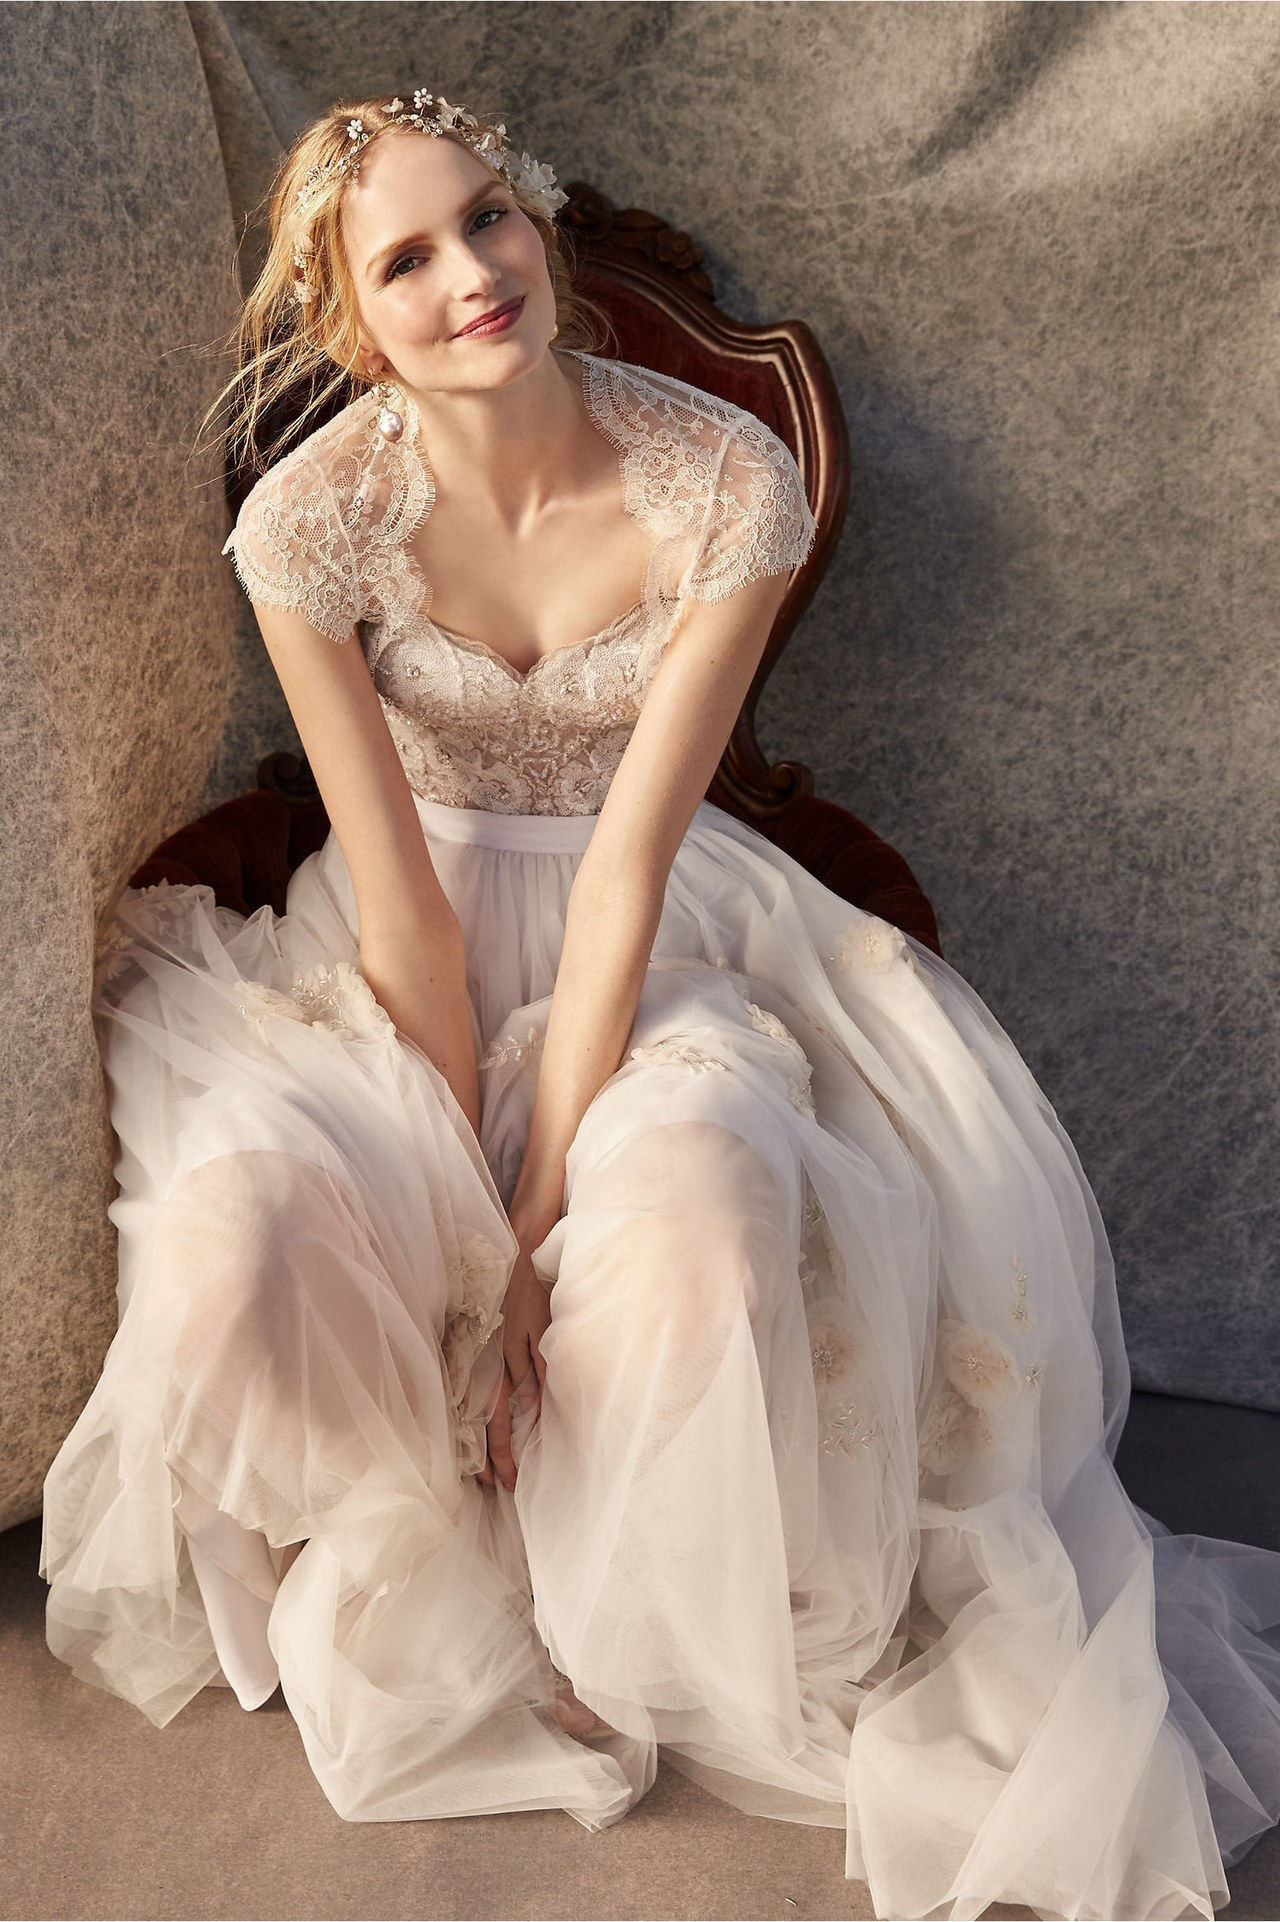 4 2 in 1 wedding dresses wedding gowns mix and match wedding dresses bhldn 0430 courtesy